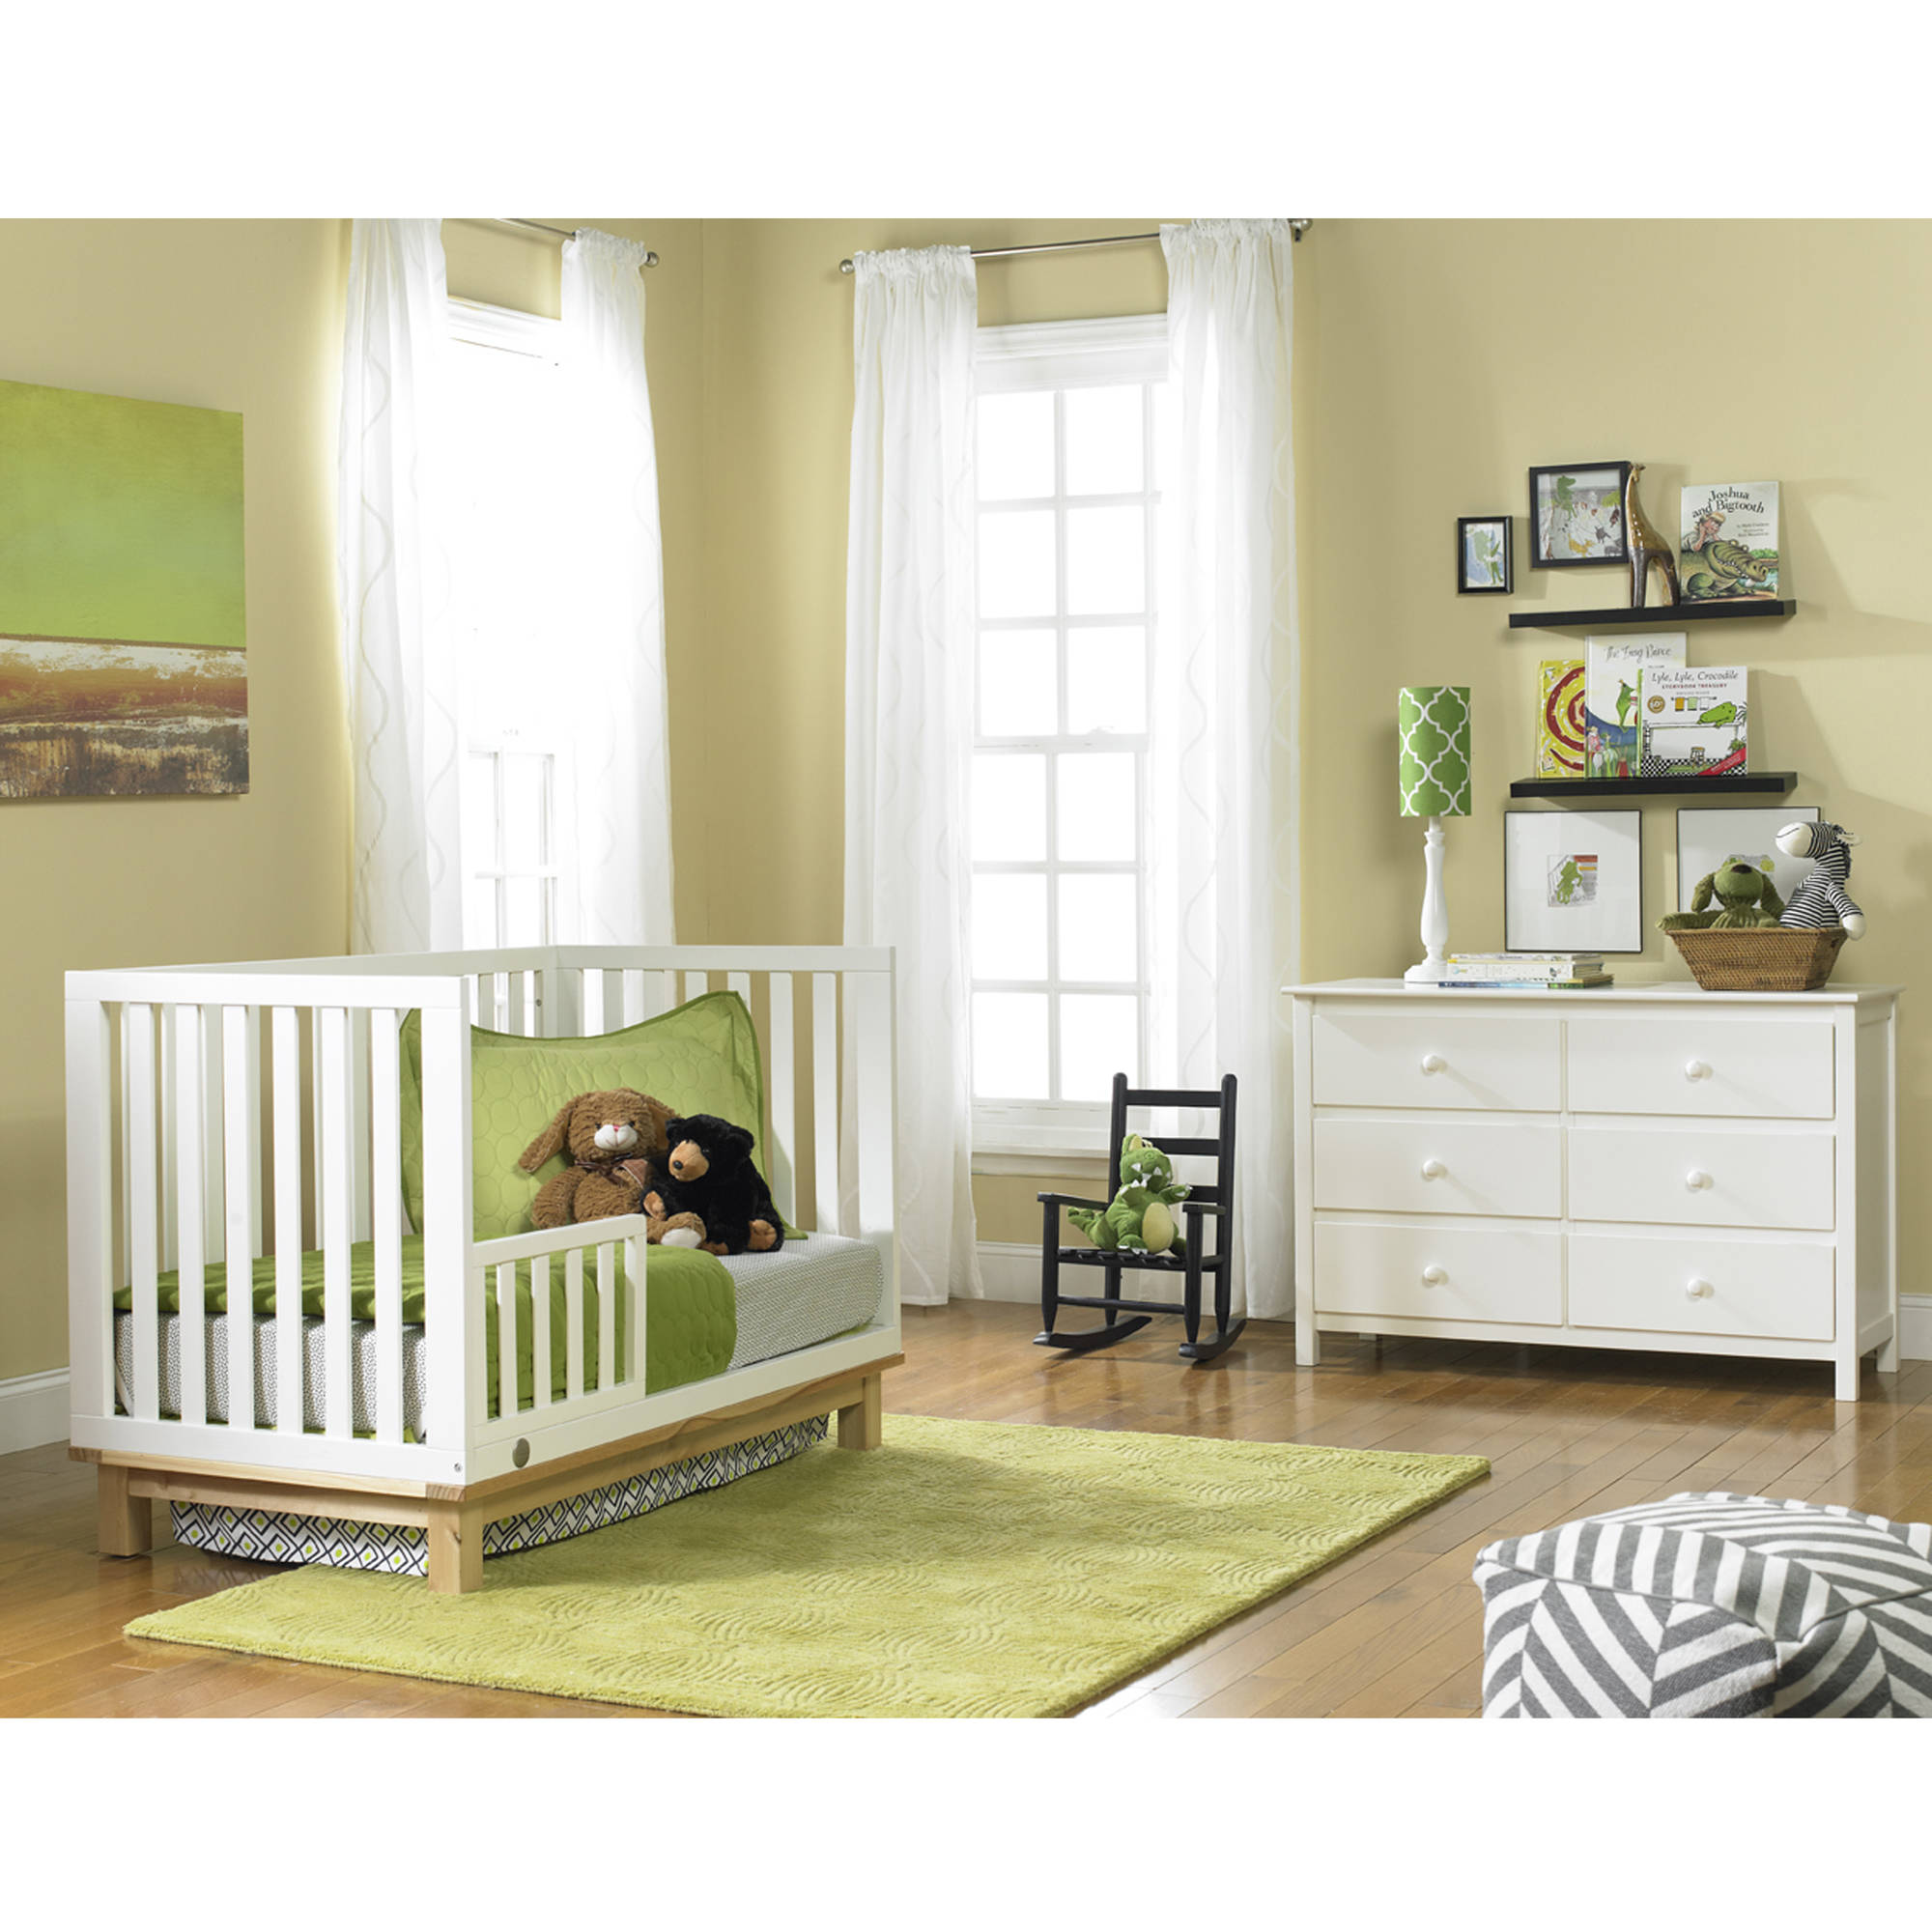 finish crib mattress simmons foundvalue natural img wood umistry photo baby